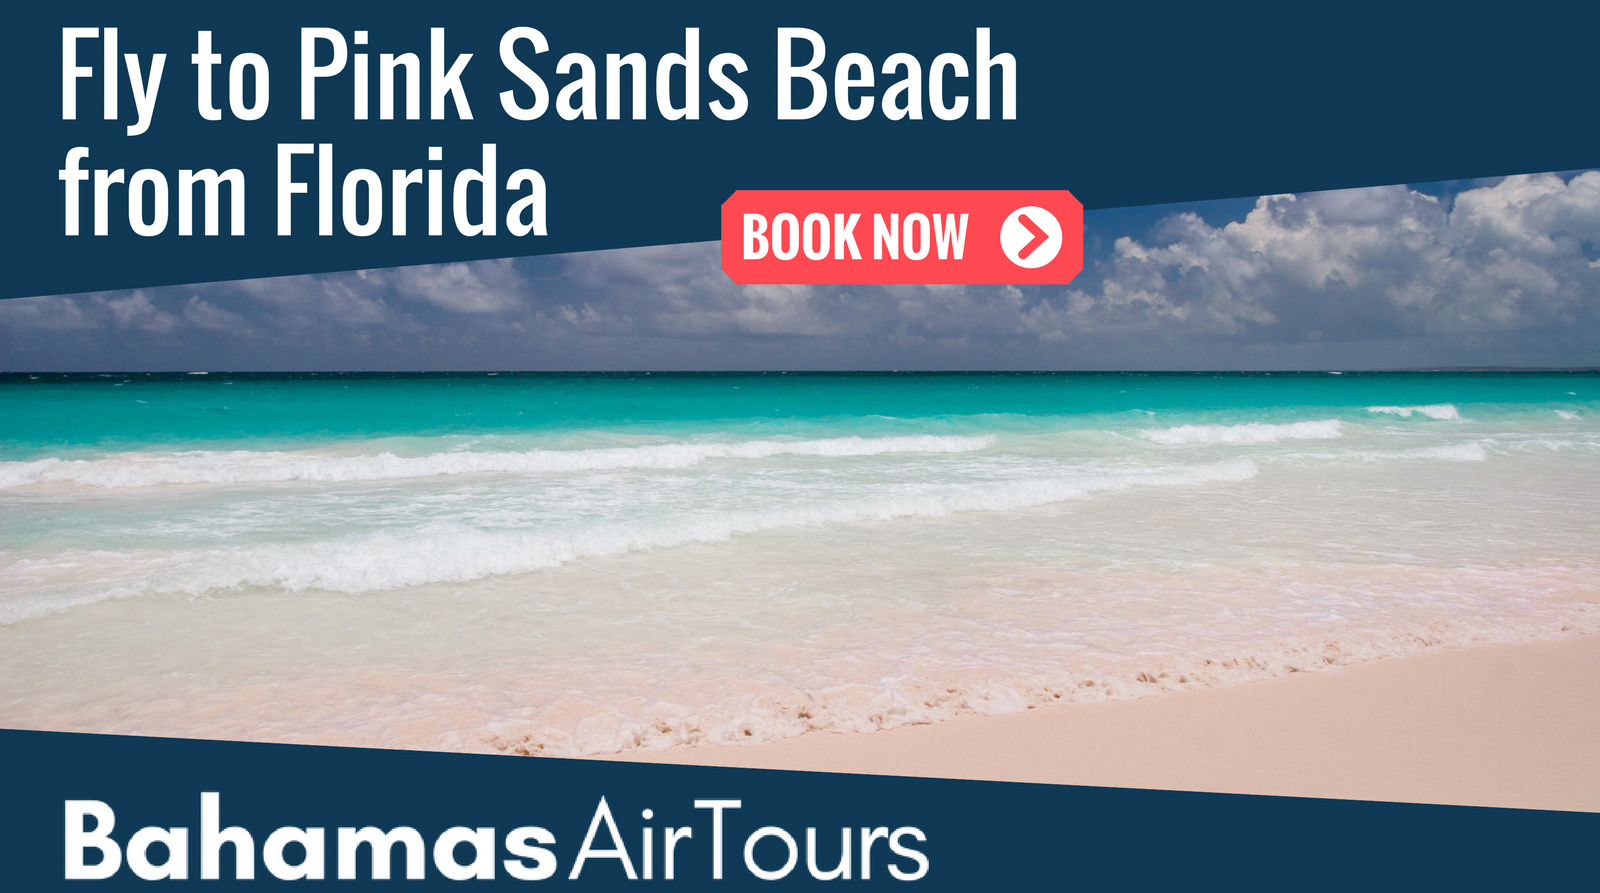 Flights to Bahamas and flights to North Eleuthera with Bahamas Air Tours, Bahamas Charter Flights from Florida to Pink Sands Beach, Pink Sands Resort, Dunmore Town, Harbour Island